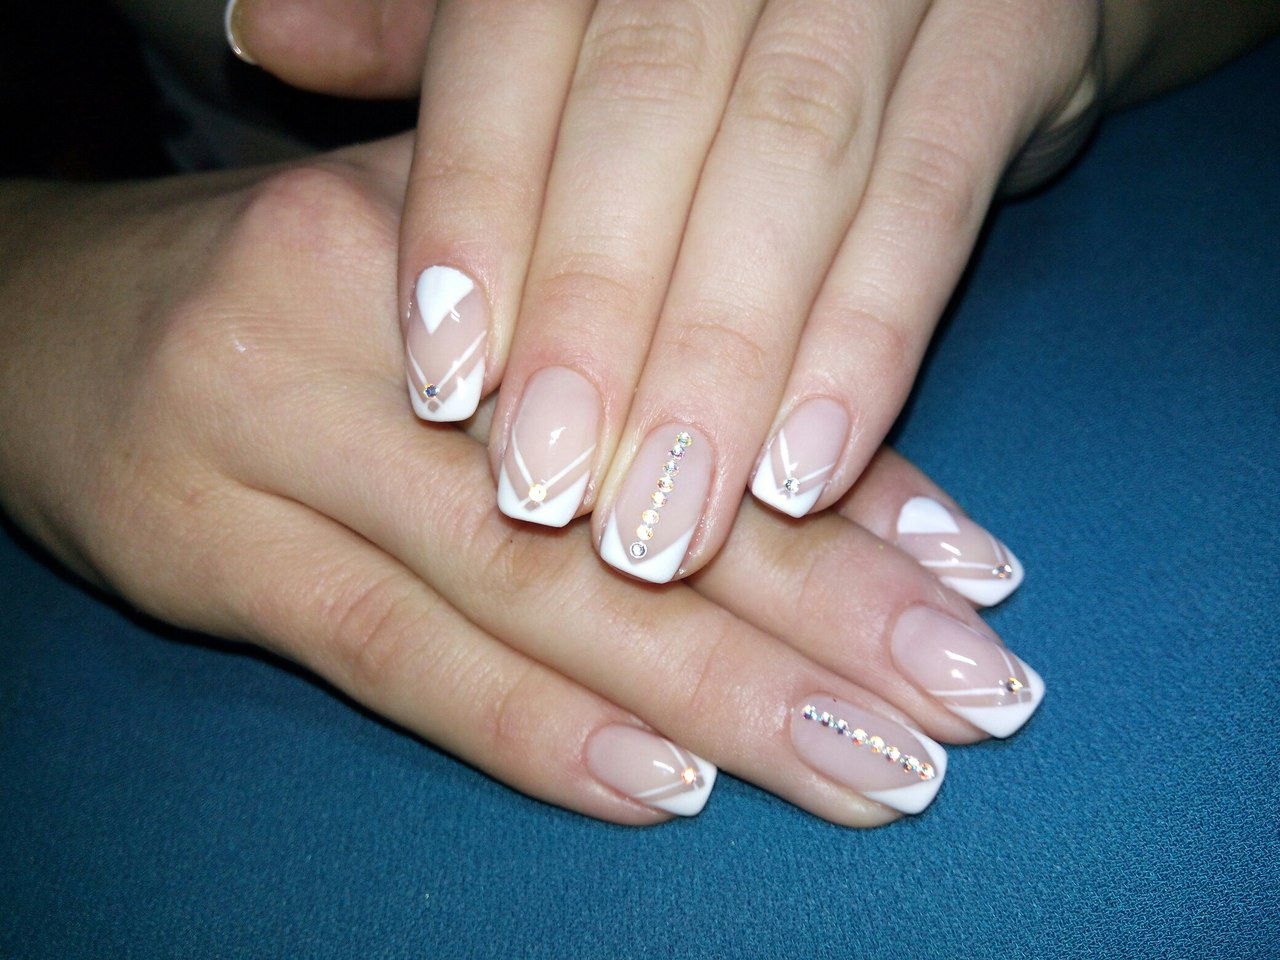 White rhinestone nail art - The Best Images | BestArtNails.com